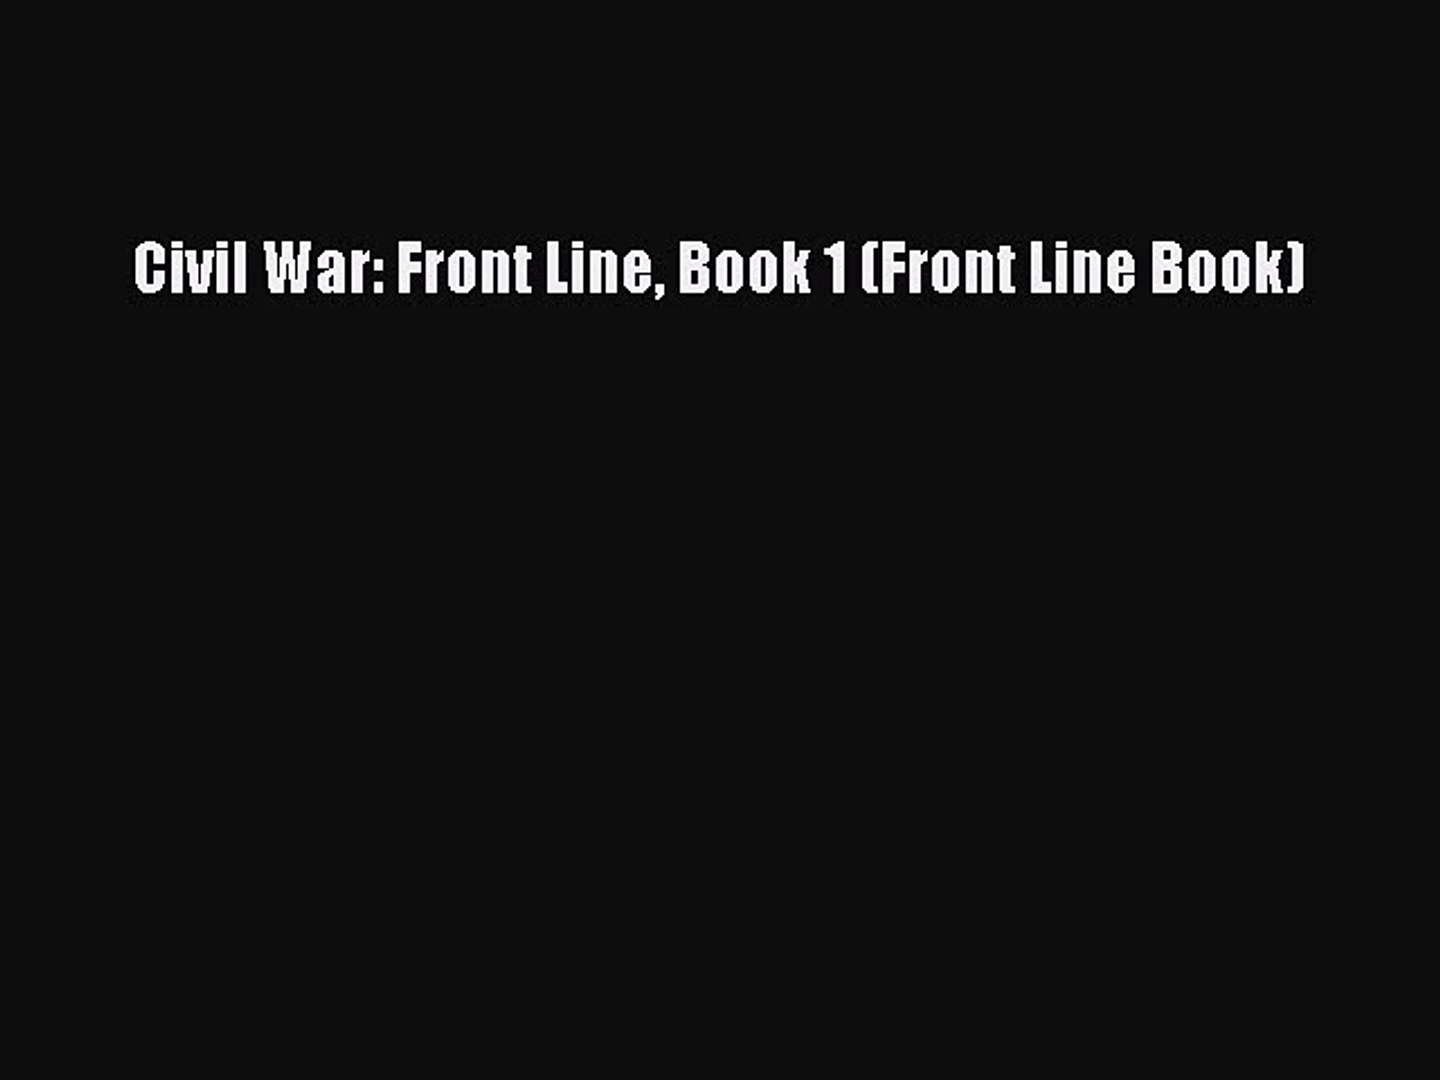 Read Civil War: Front Line Book 1 (Front Line Book) Ebook Free